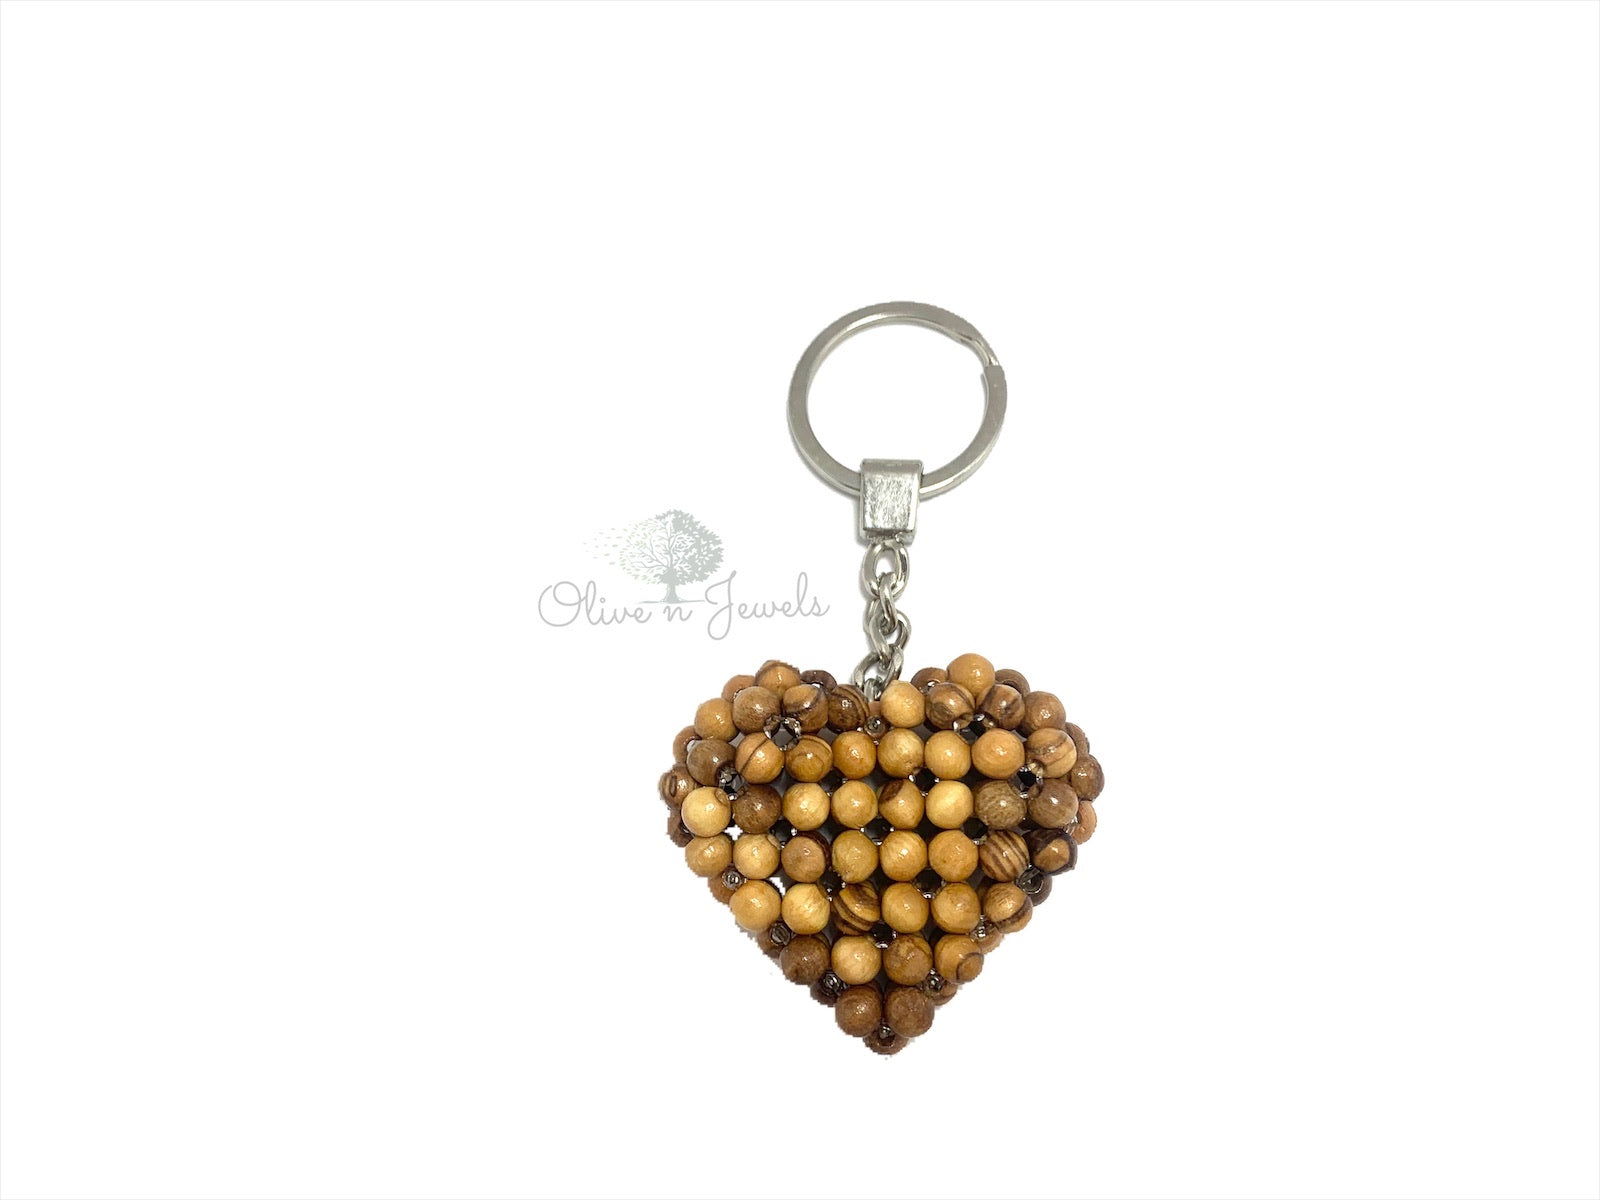 Olive Beads Heart Key Chain